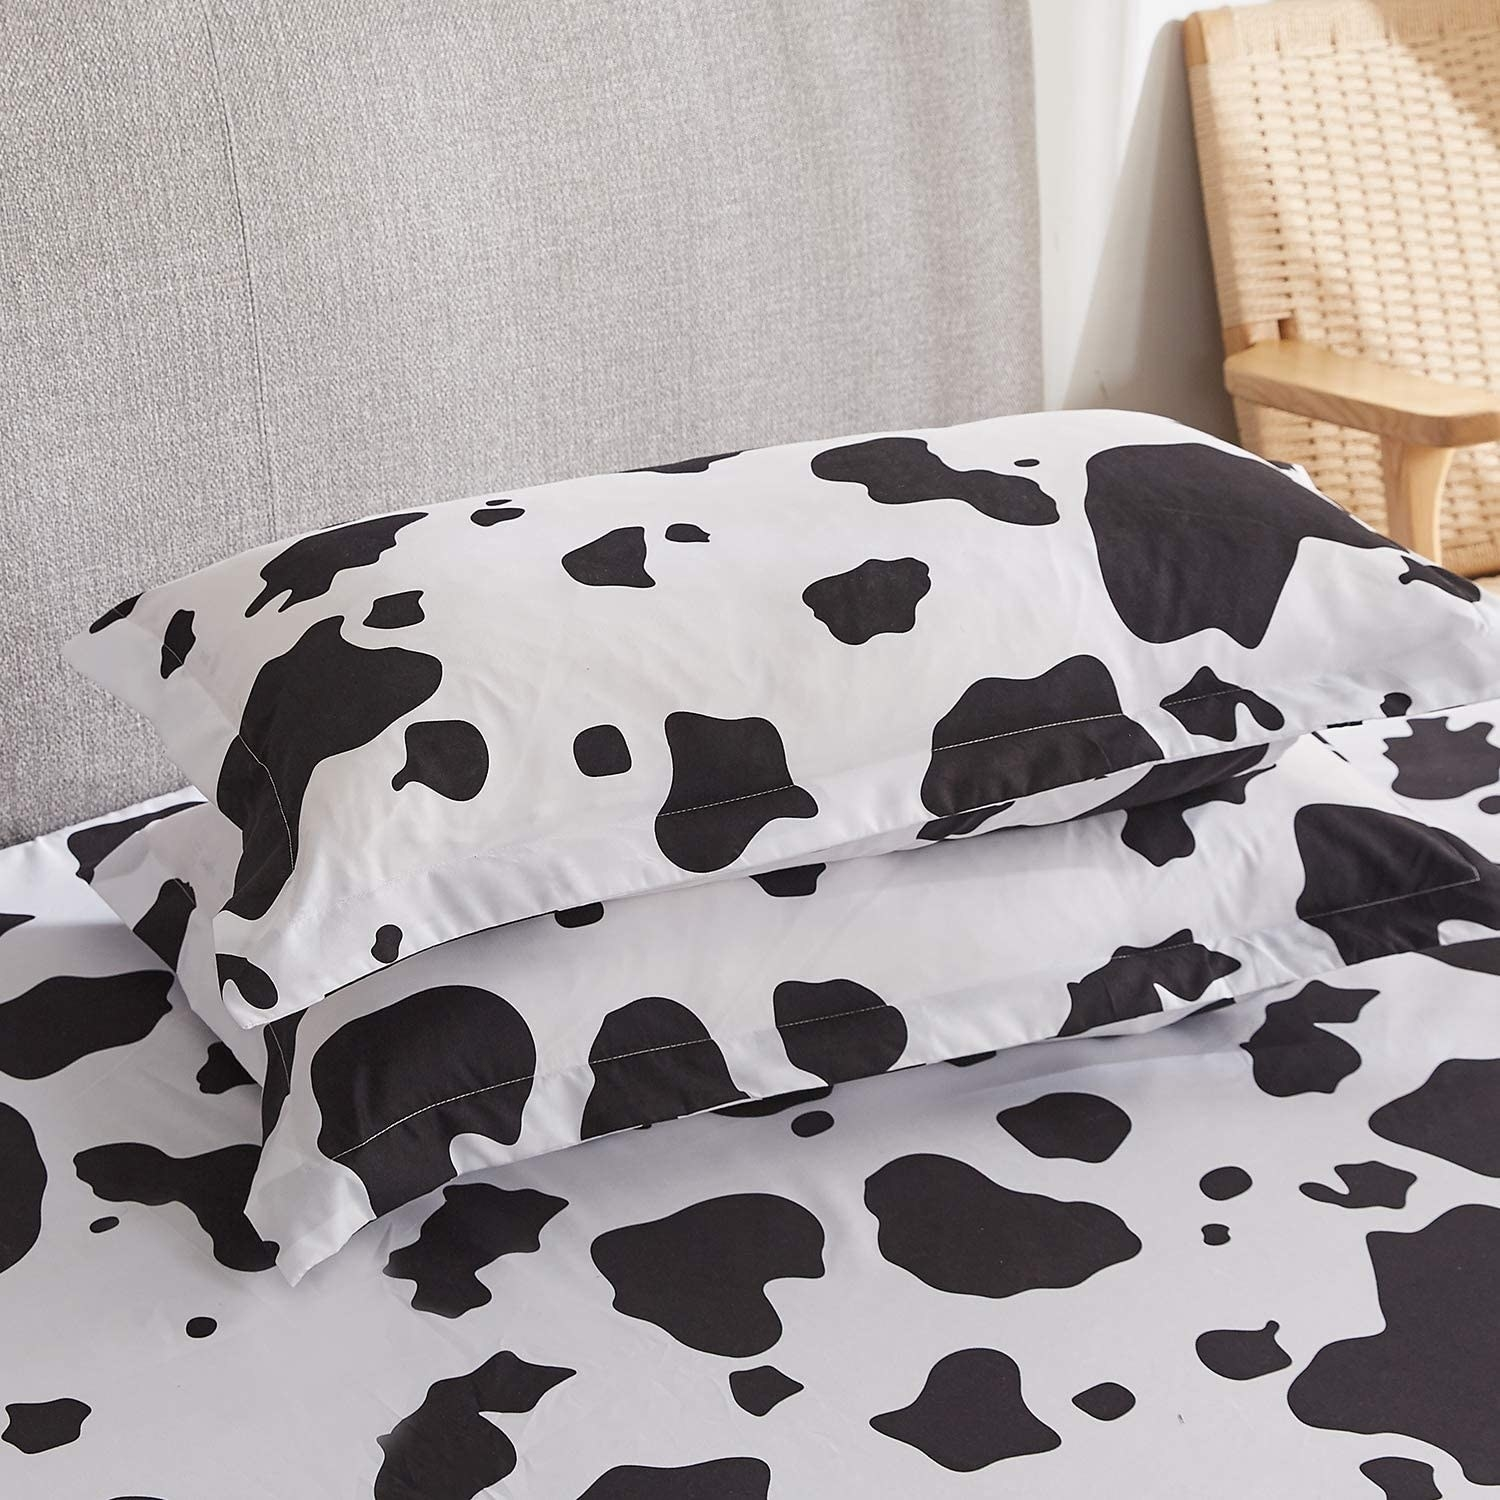 The cow print bed sheets on a bed